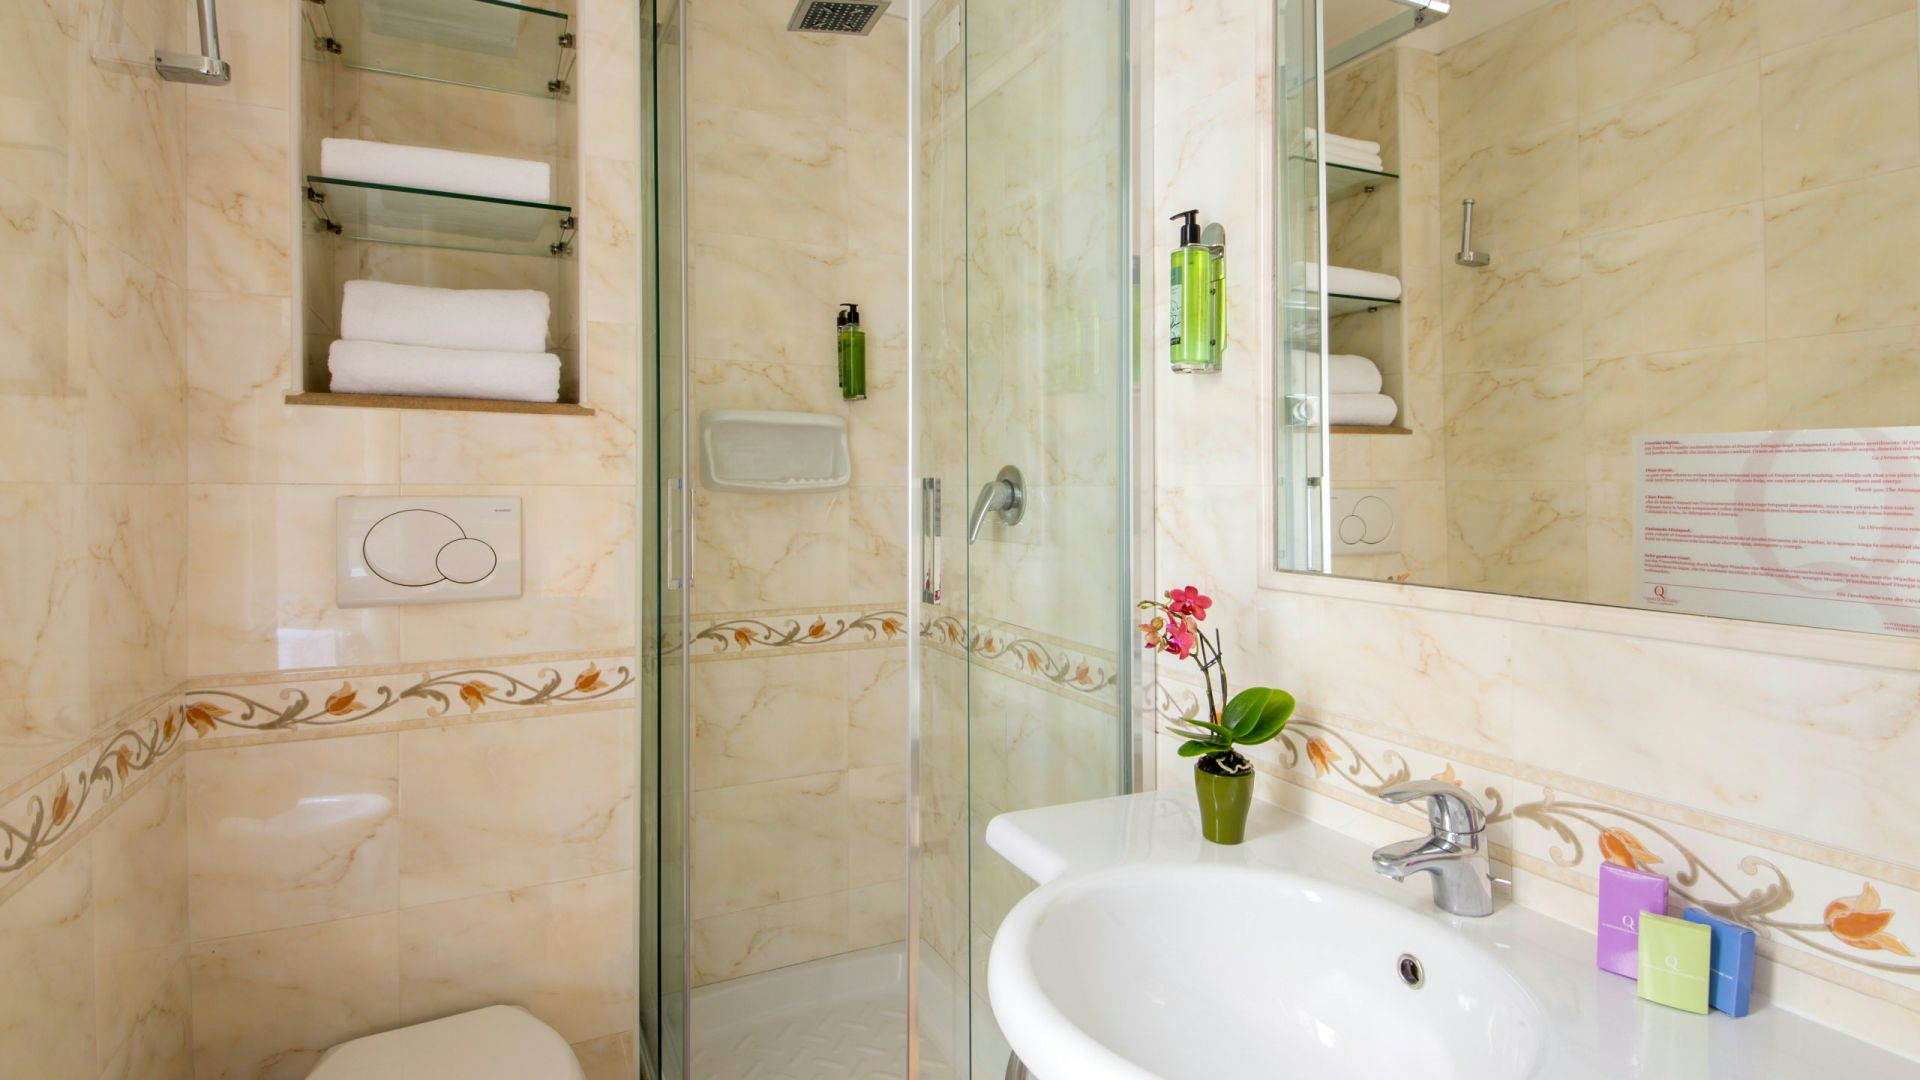 Foto-Hotel-Oxford-Roma-bagno-camera-2